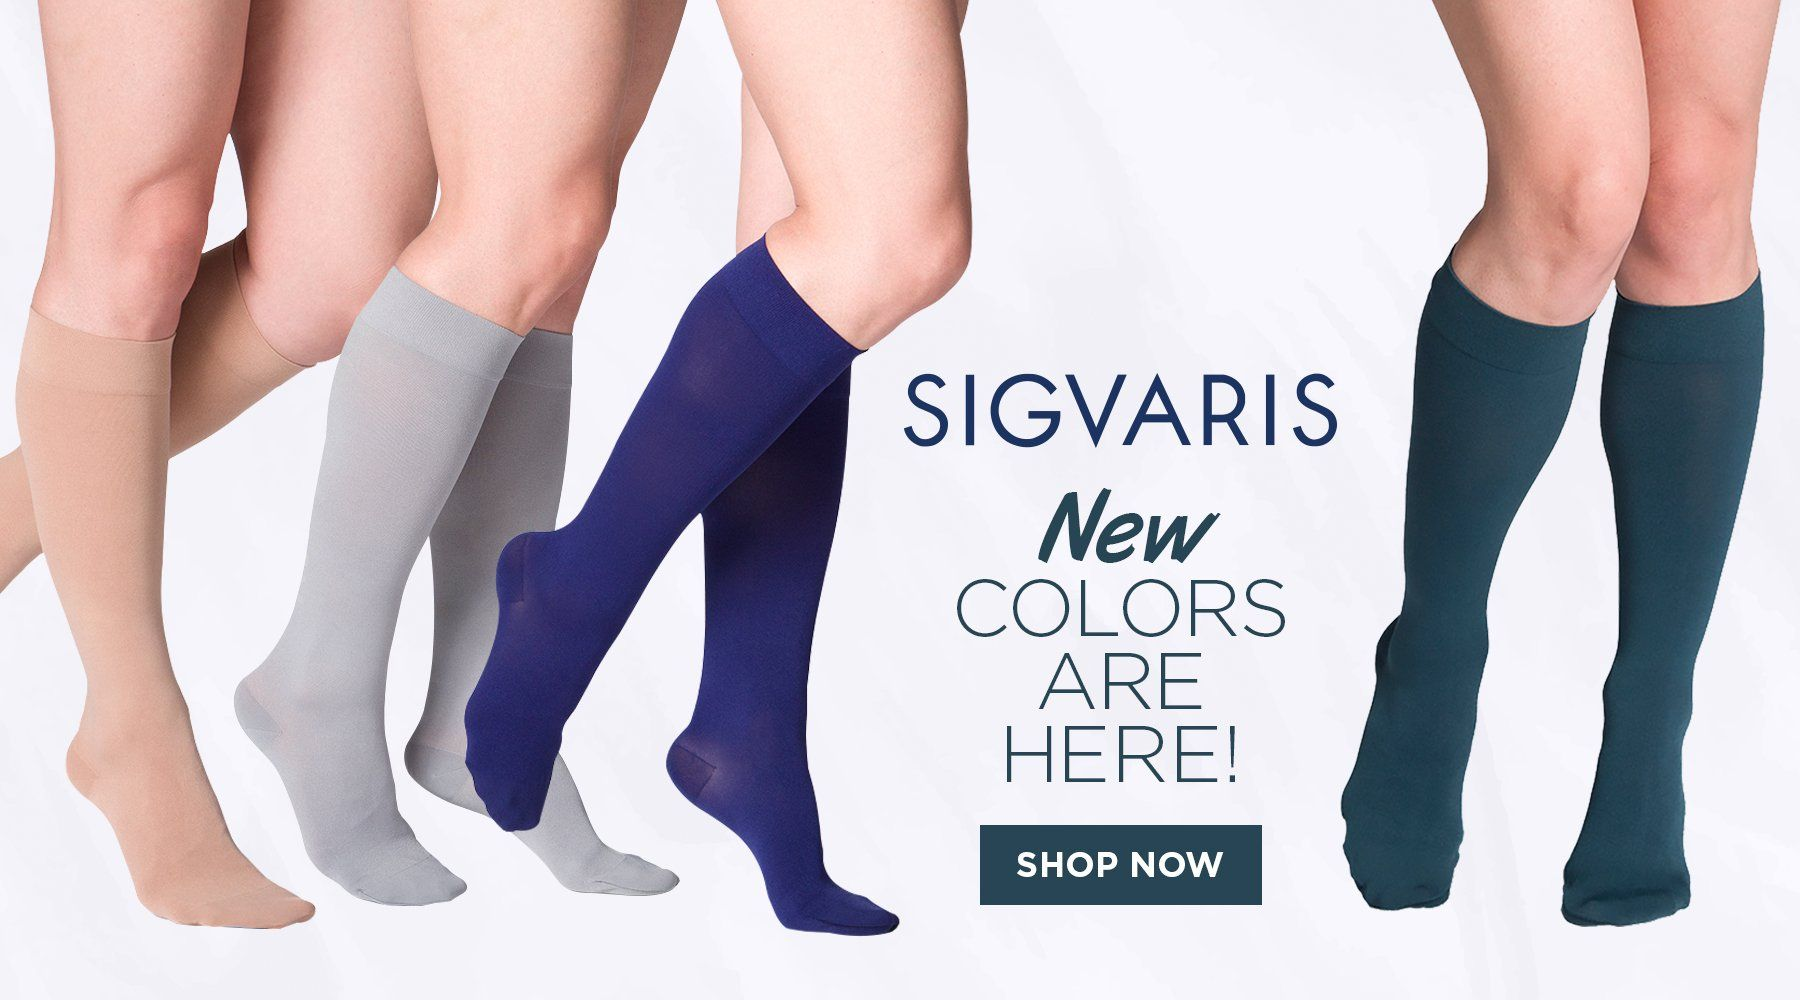 438c4ade7ac Compression Socks and Compression Stockings - BrightLife Direct